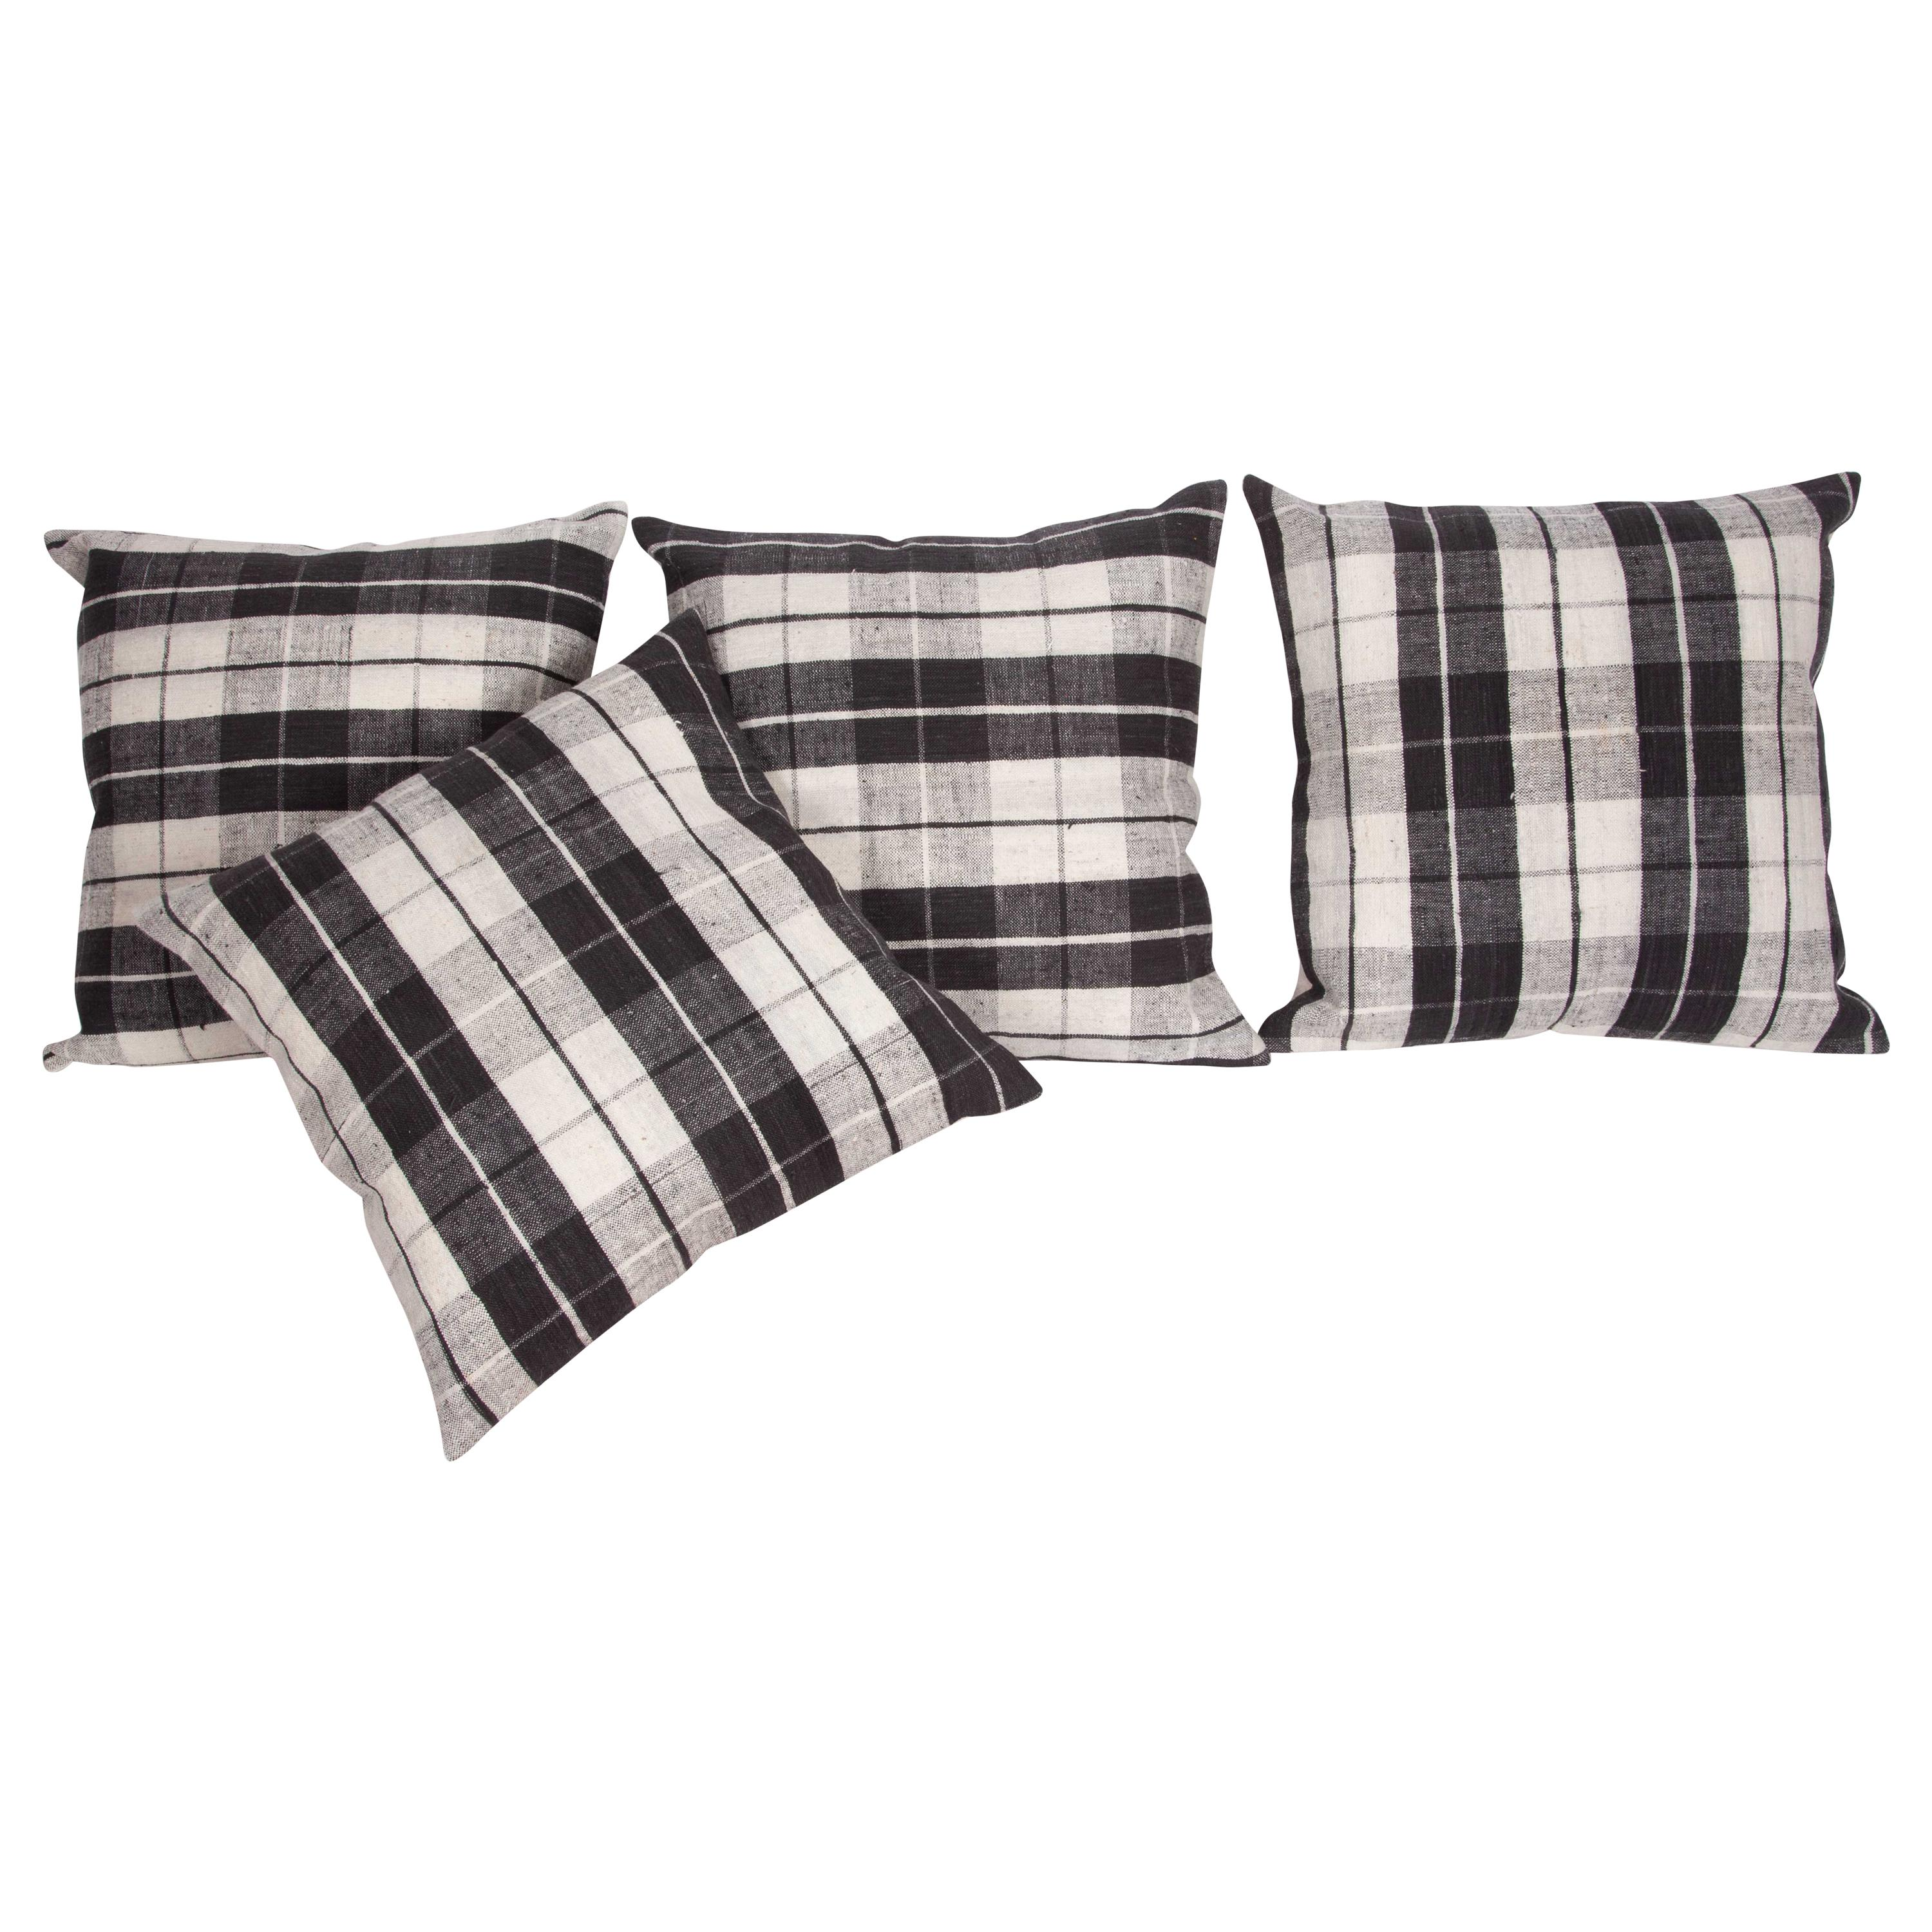 Pillow Cases Fashioned from a Mid-20th Century Anatolian Cotton Cover